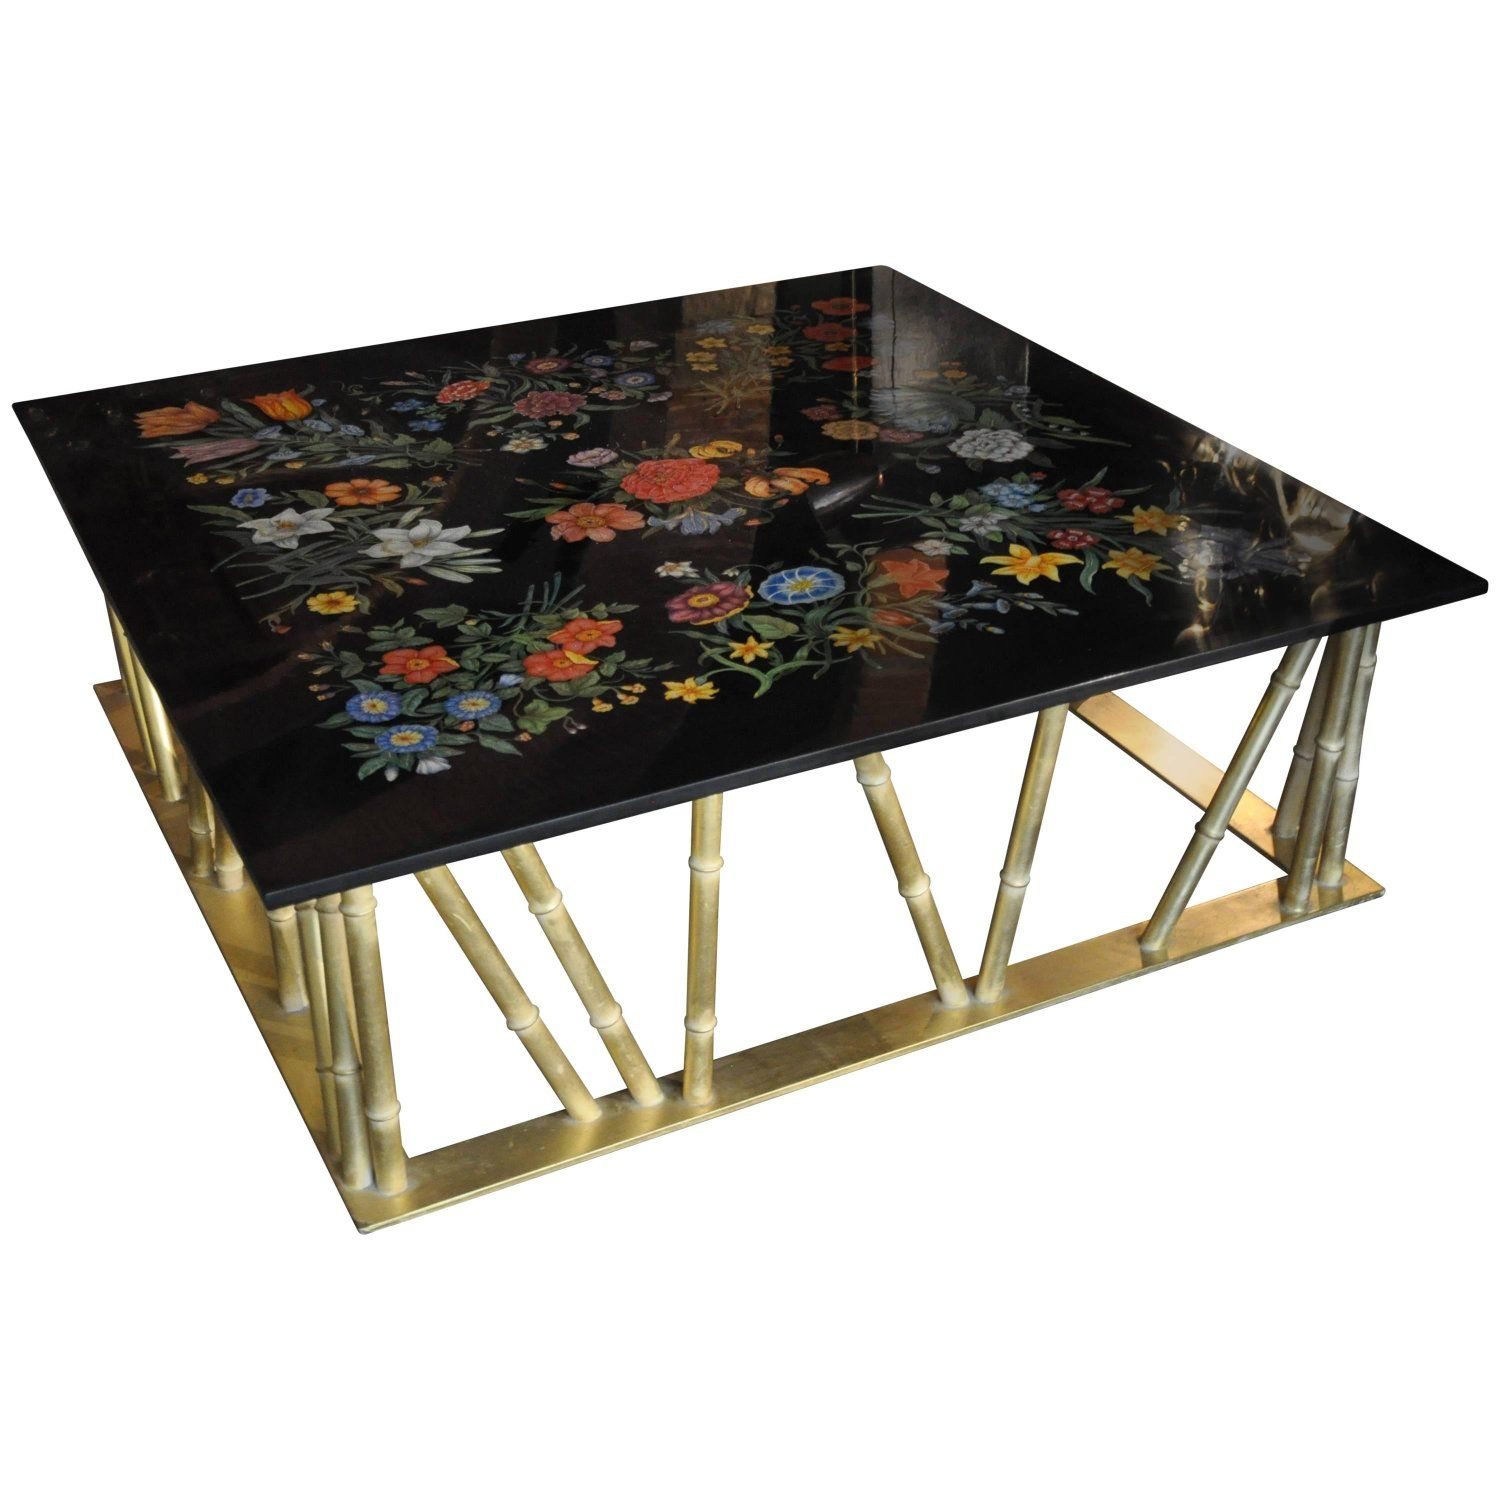 Scagliola Crafted Gucci Inspired Coffee Table 테이브ㄹ Pinterest - Gucci coffee table